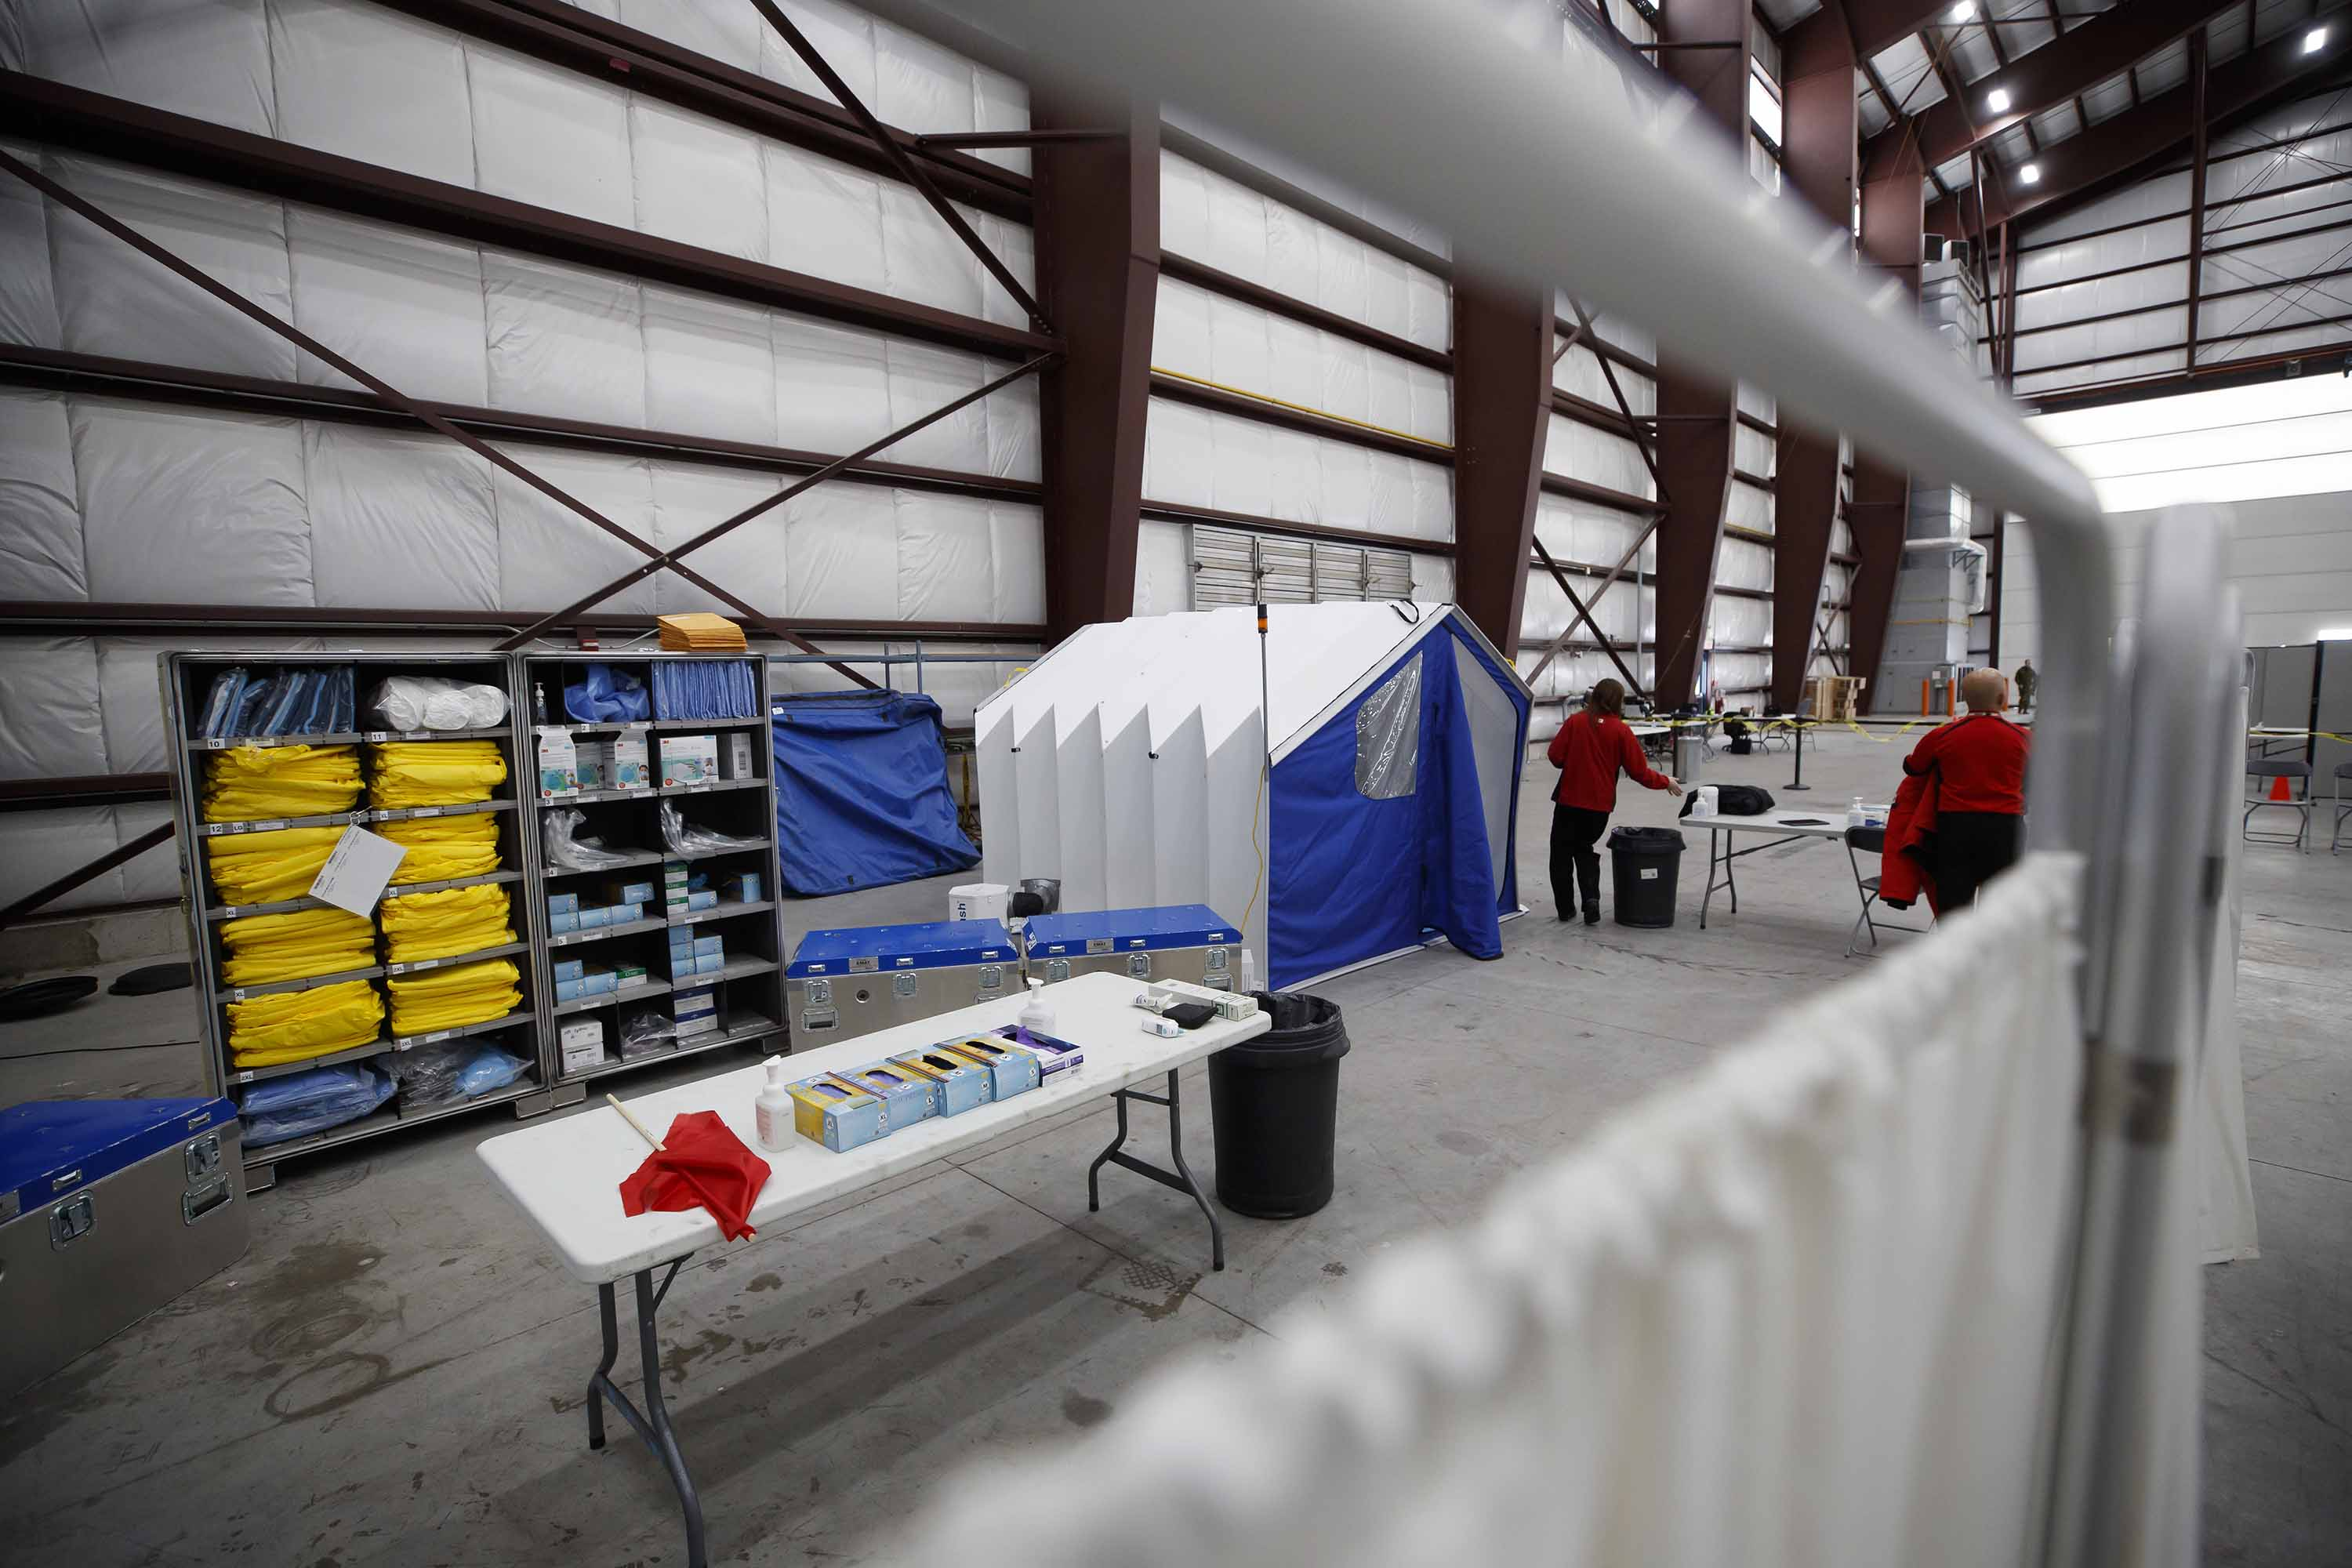 An examination area is set up at a quarantine processing facility in Trenton, Canada on February 6.